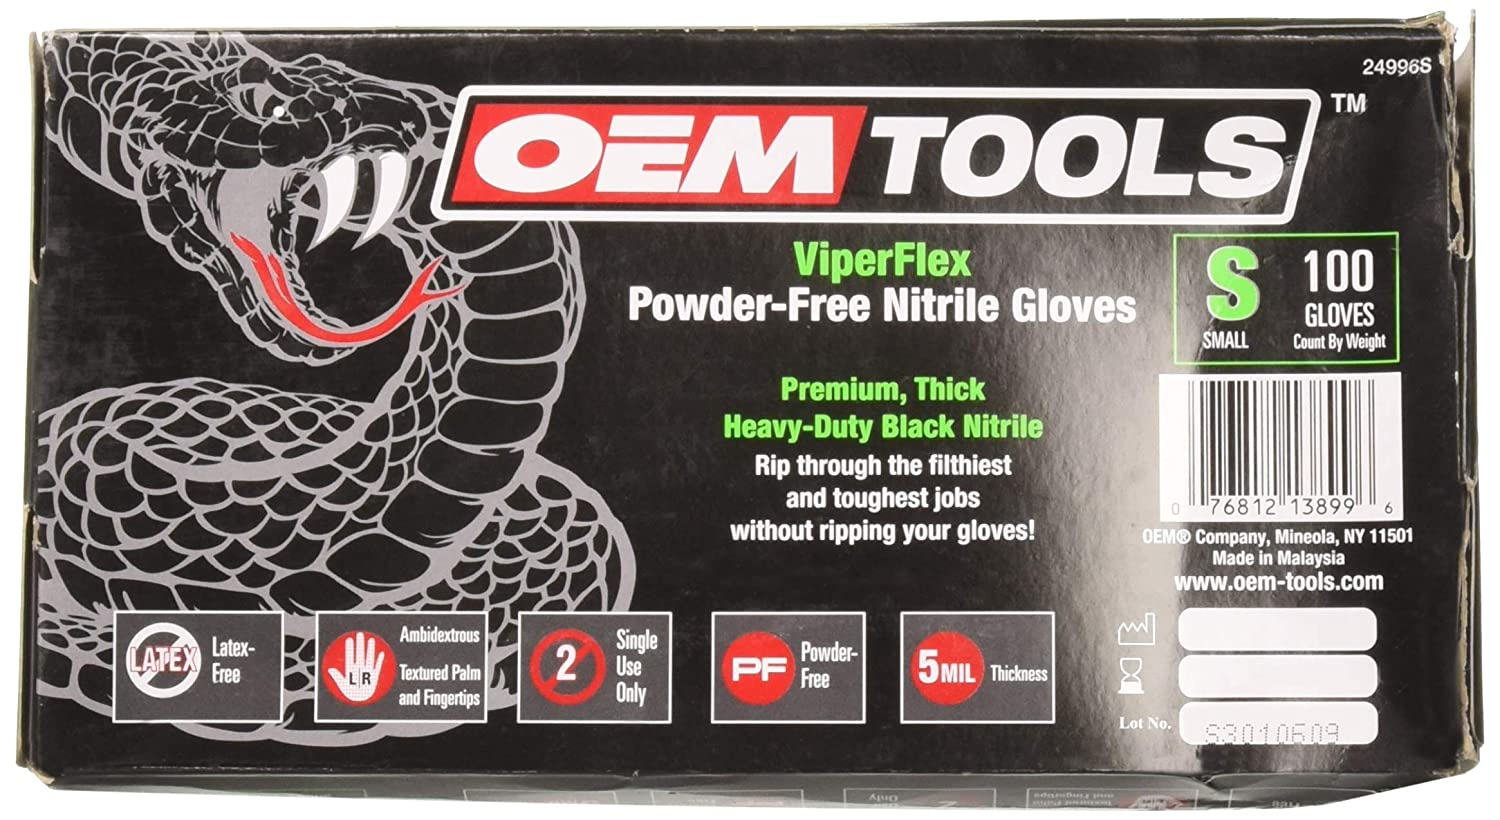 OEMTOOLS 24996S Viper Flex Powder-Free Nitrile Gloves Occupational